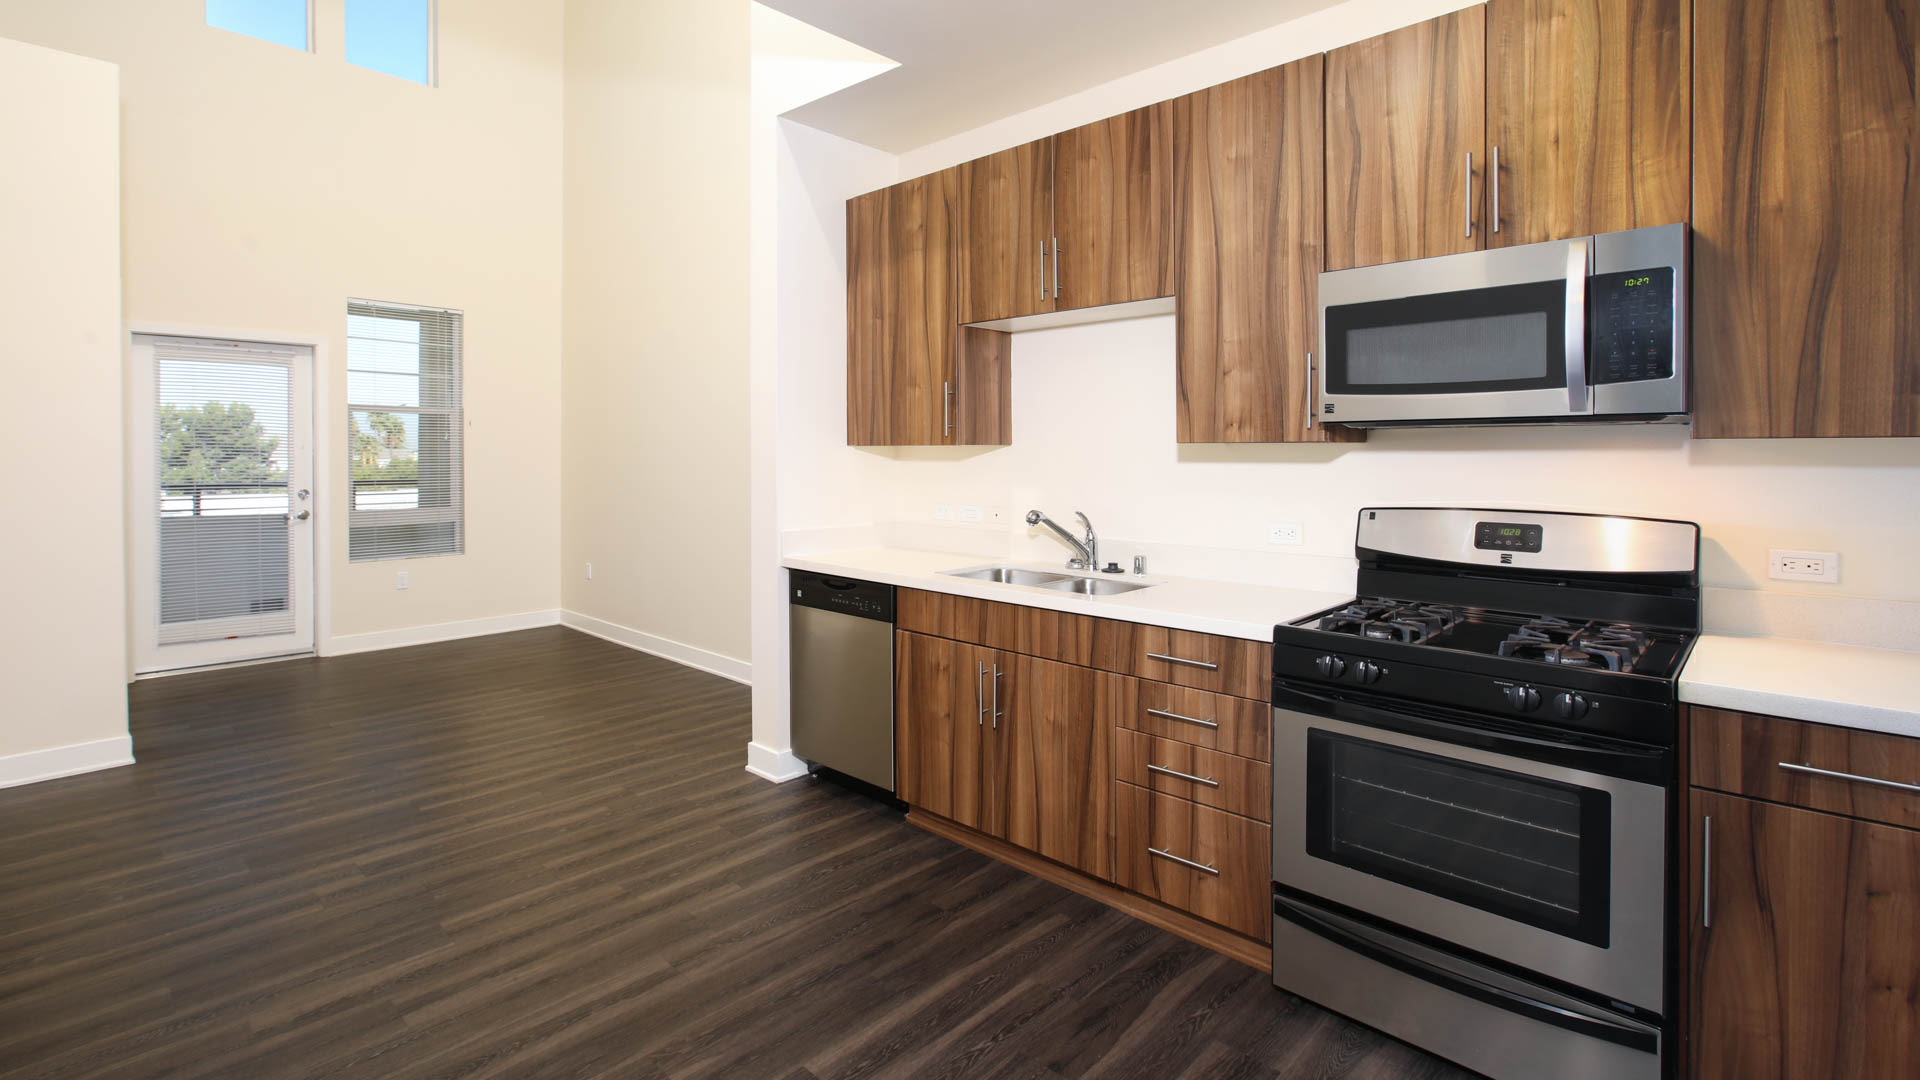 The Kelvin Apartments - Kitchen and Living Area